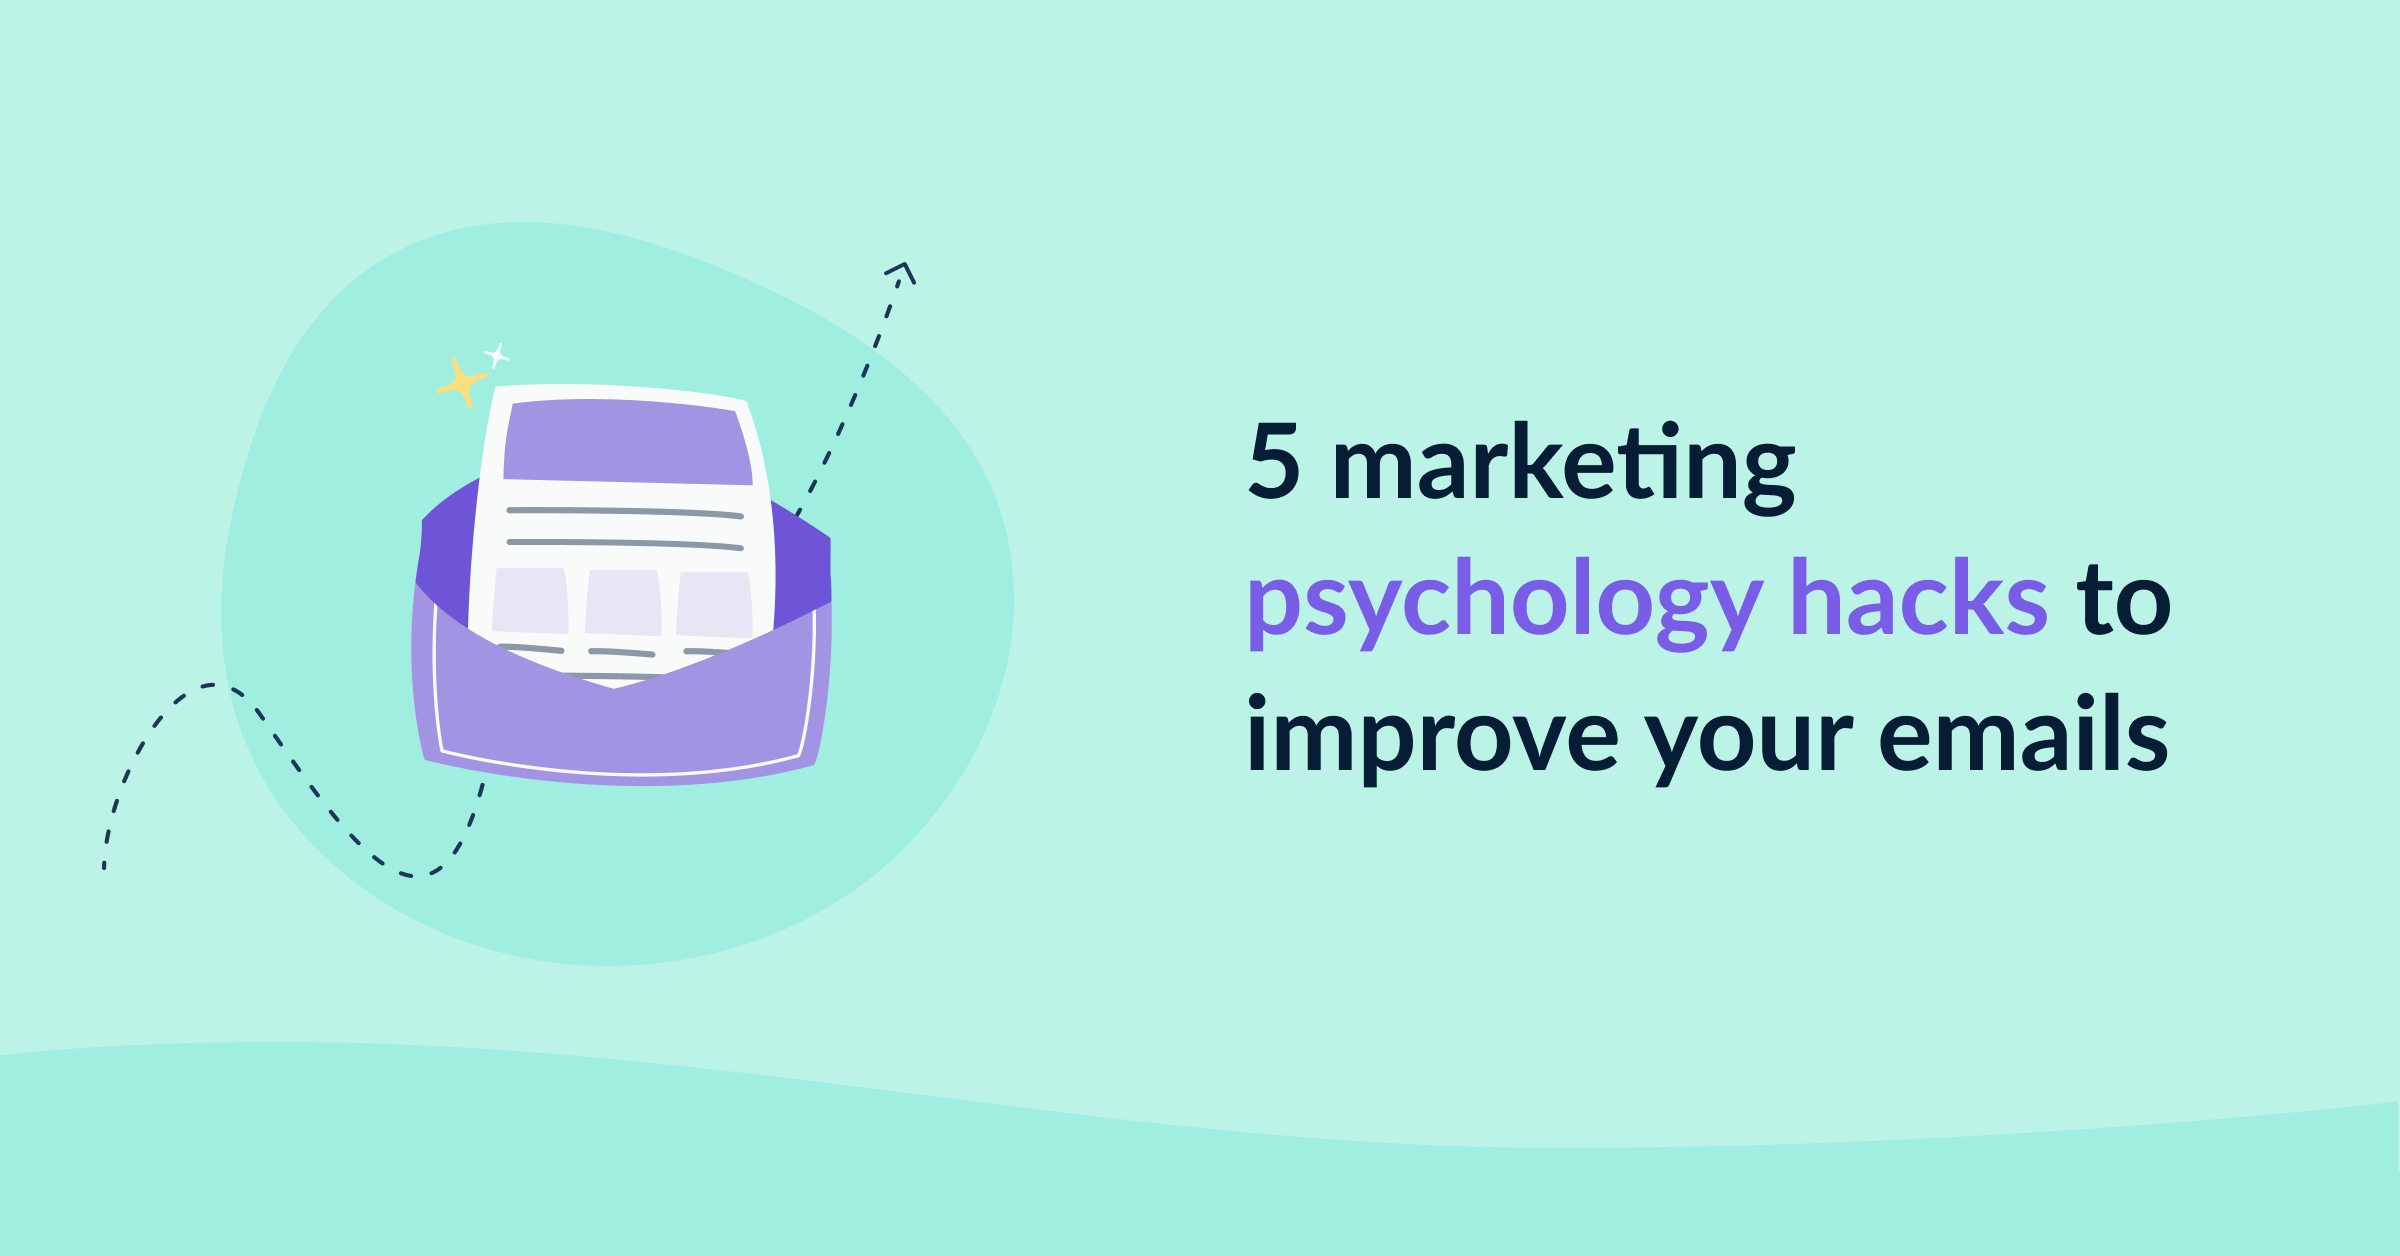 5 marketing psychology hacks to improve your emails cover image